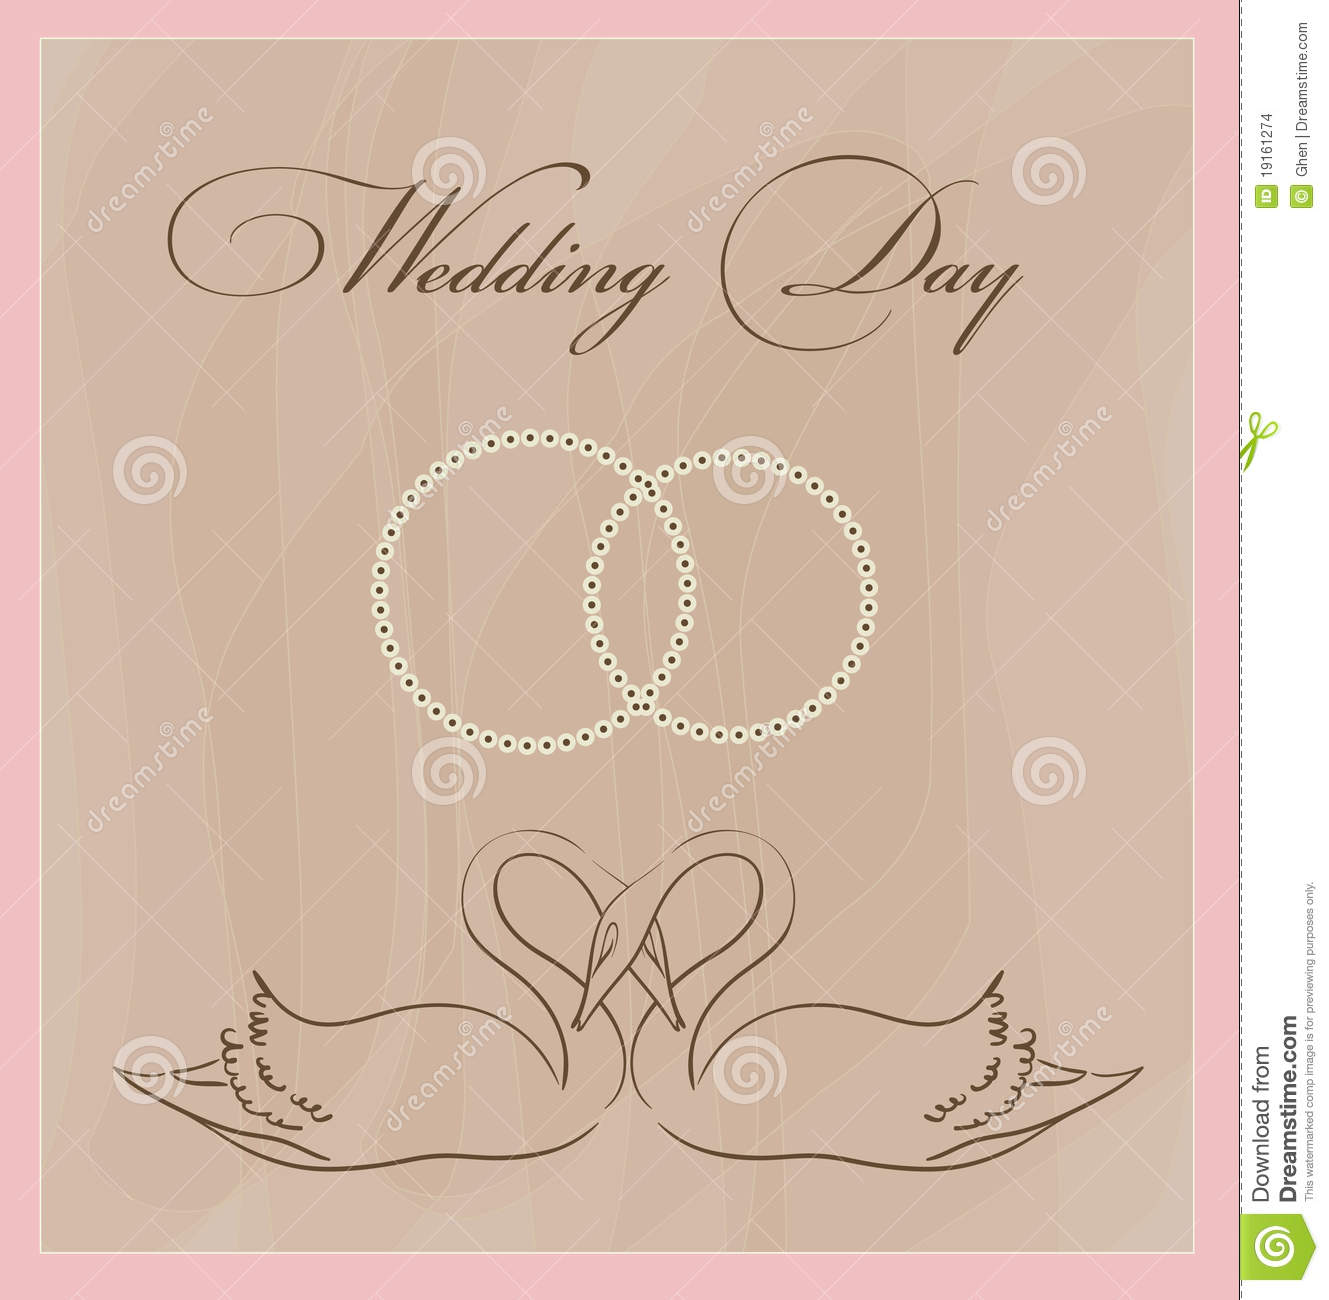 Wedding Card Template Stock Images - Image: 19161274